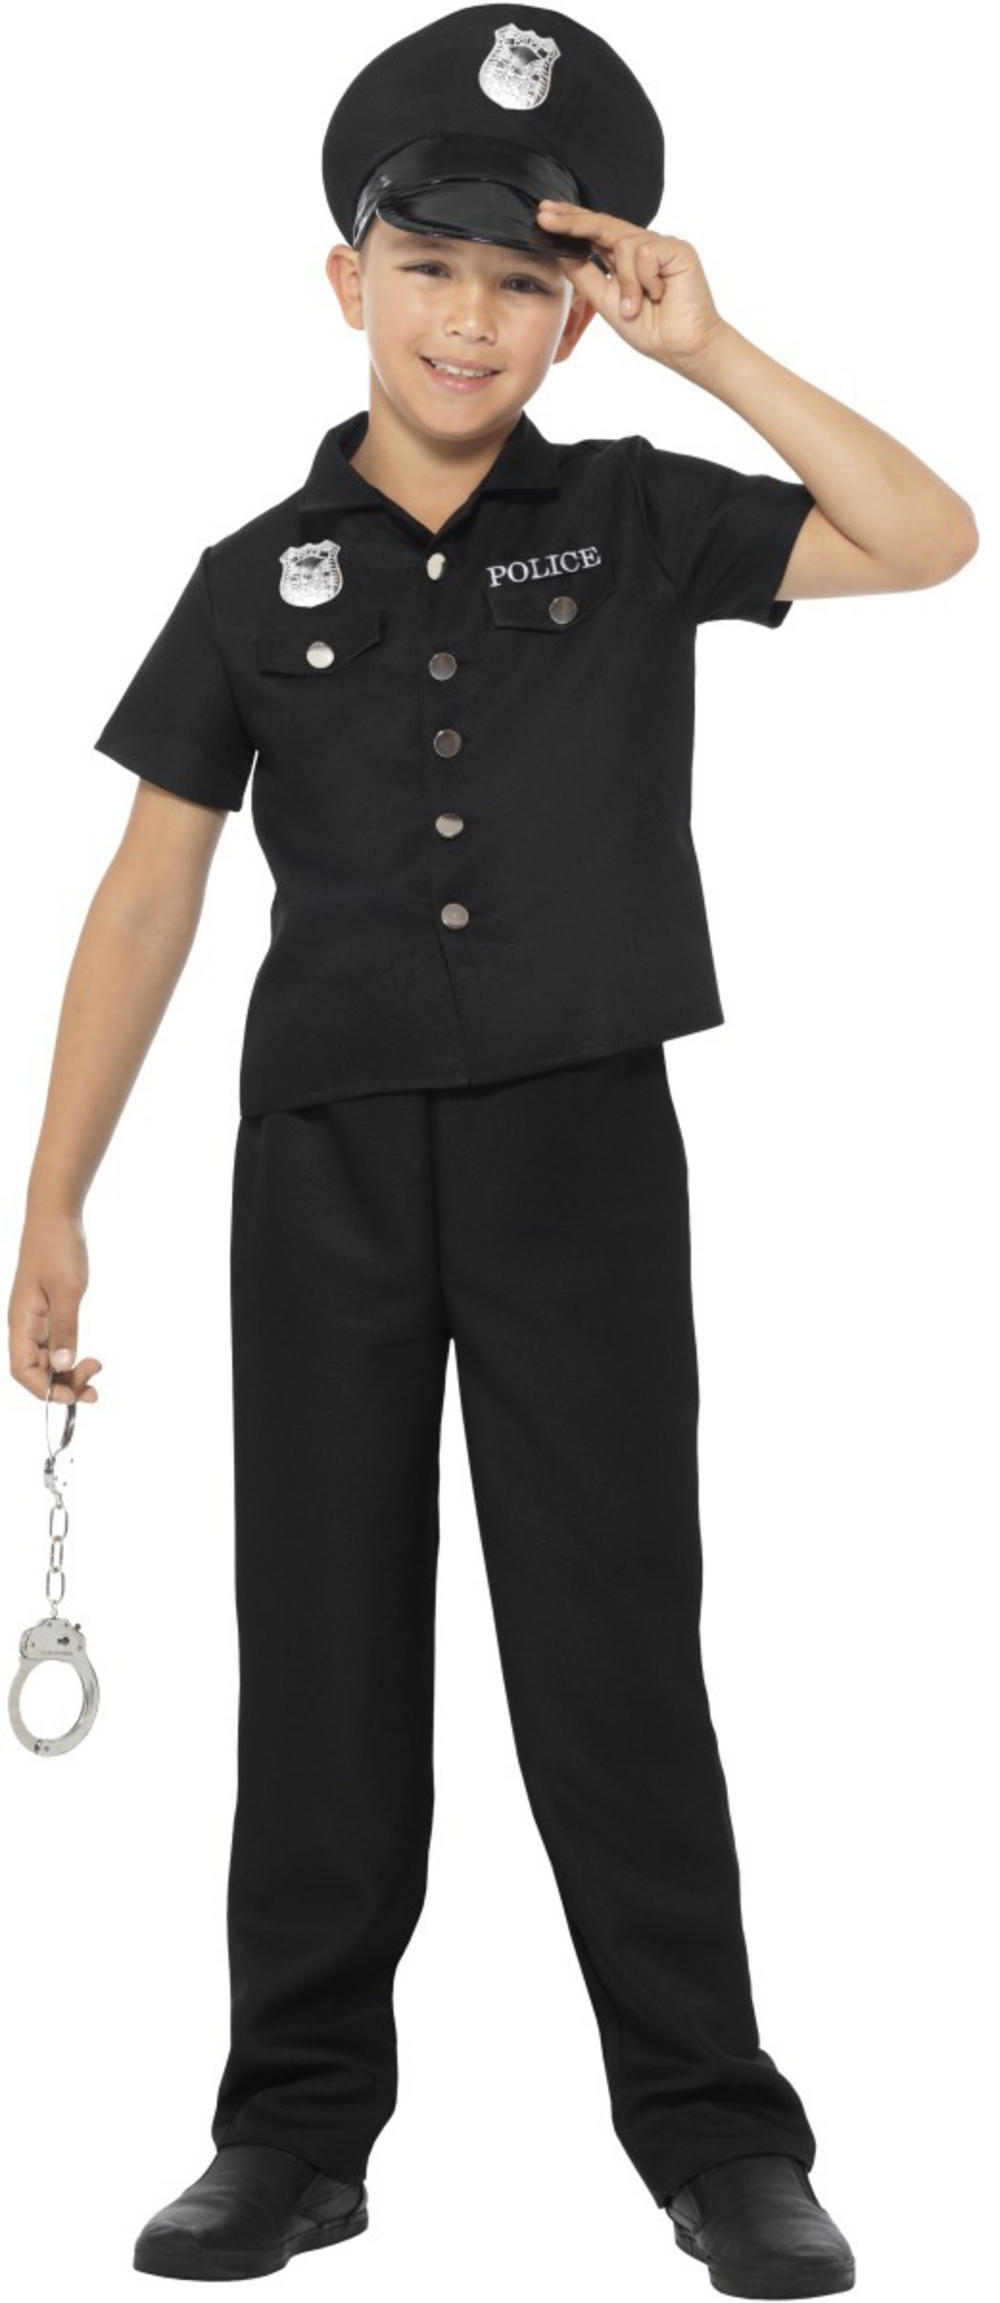 Plastic Handcuffs With Key Fancy Dress Police Costume Accessory Cop Cops